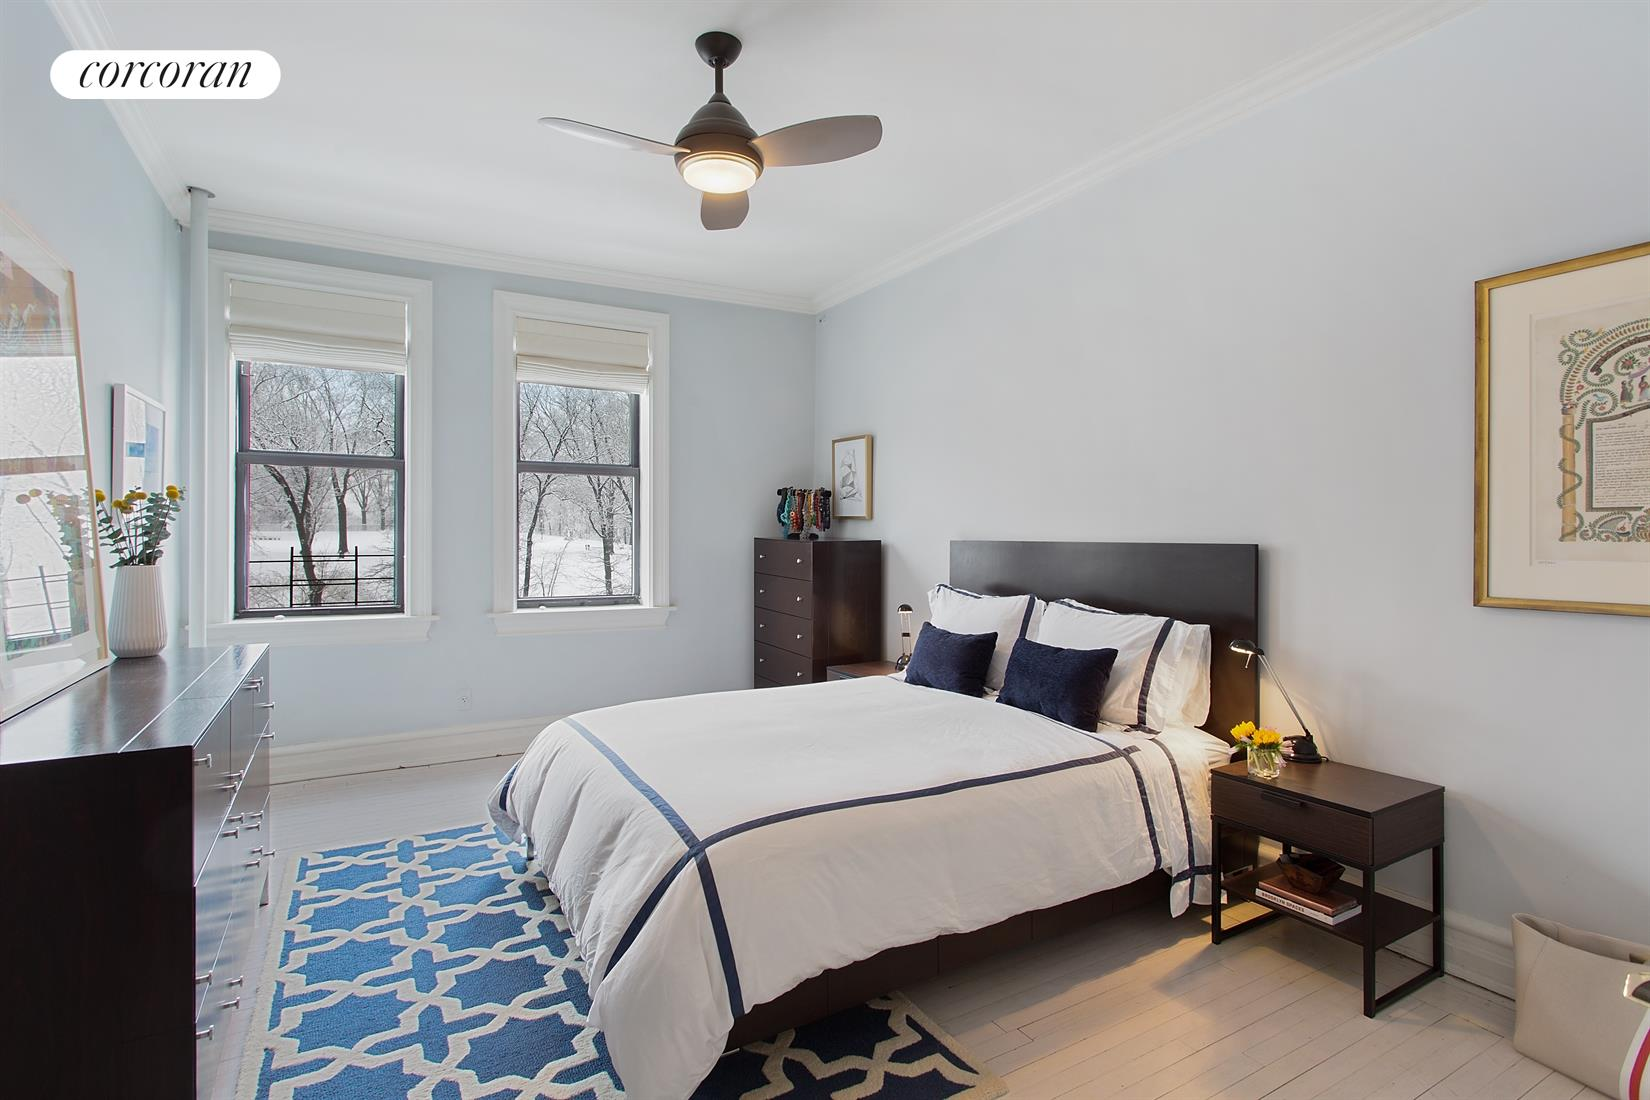 Corcoran, 61 Eastern Parkway, Apt. 4C, Prospect Heights Real Estate ...